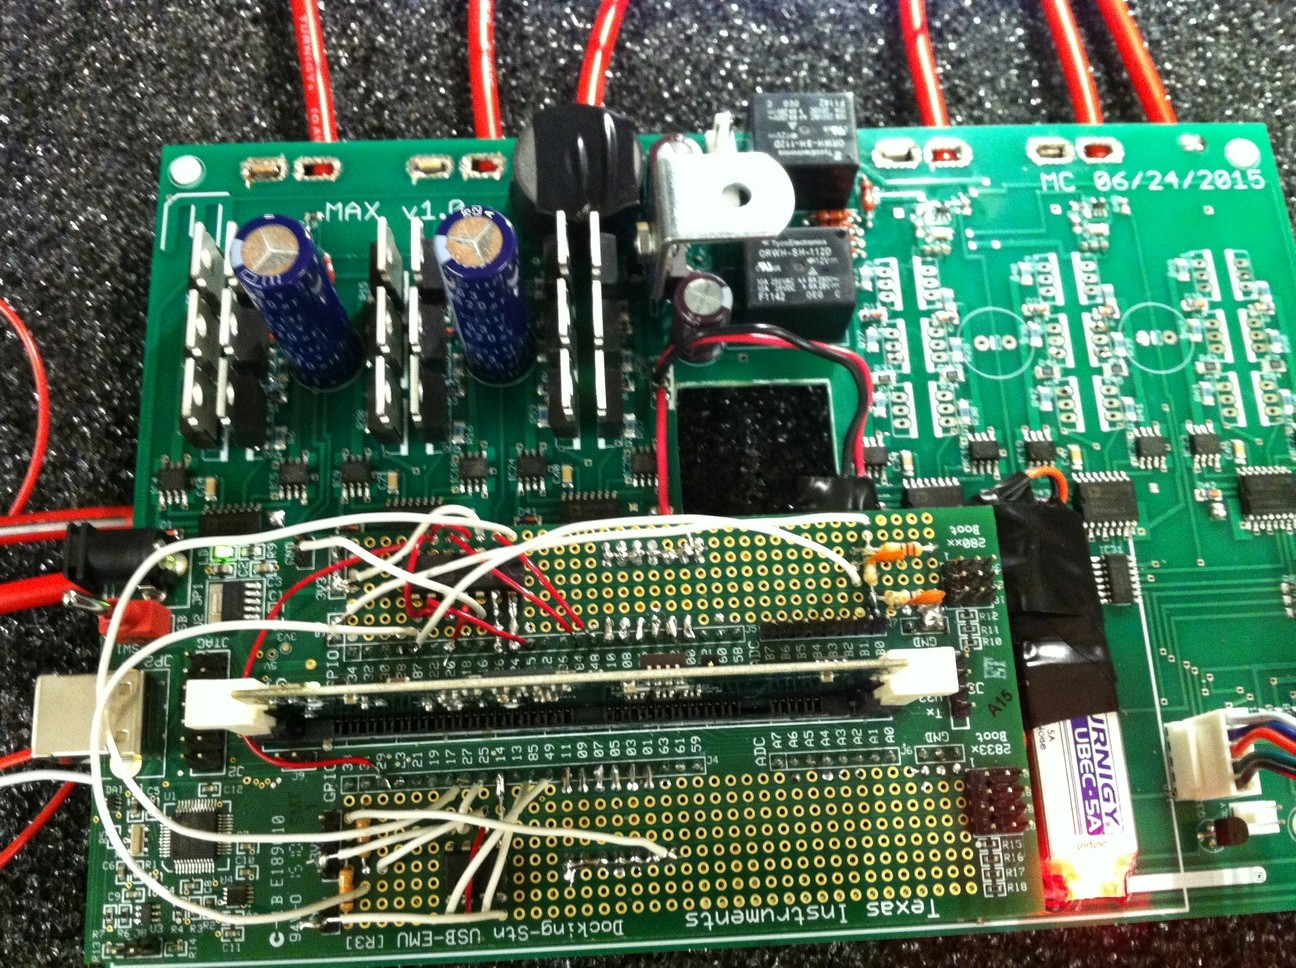 The board is ready for controlling one motor